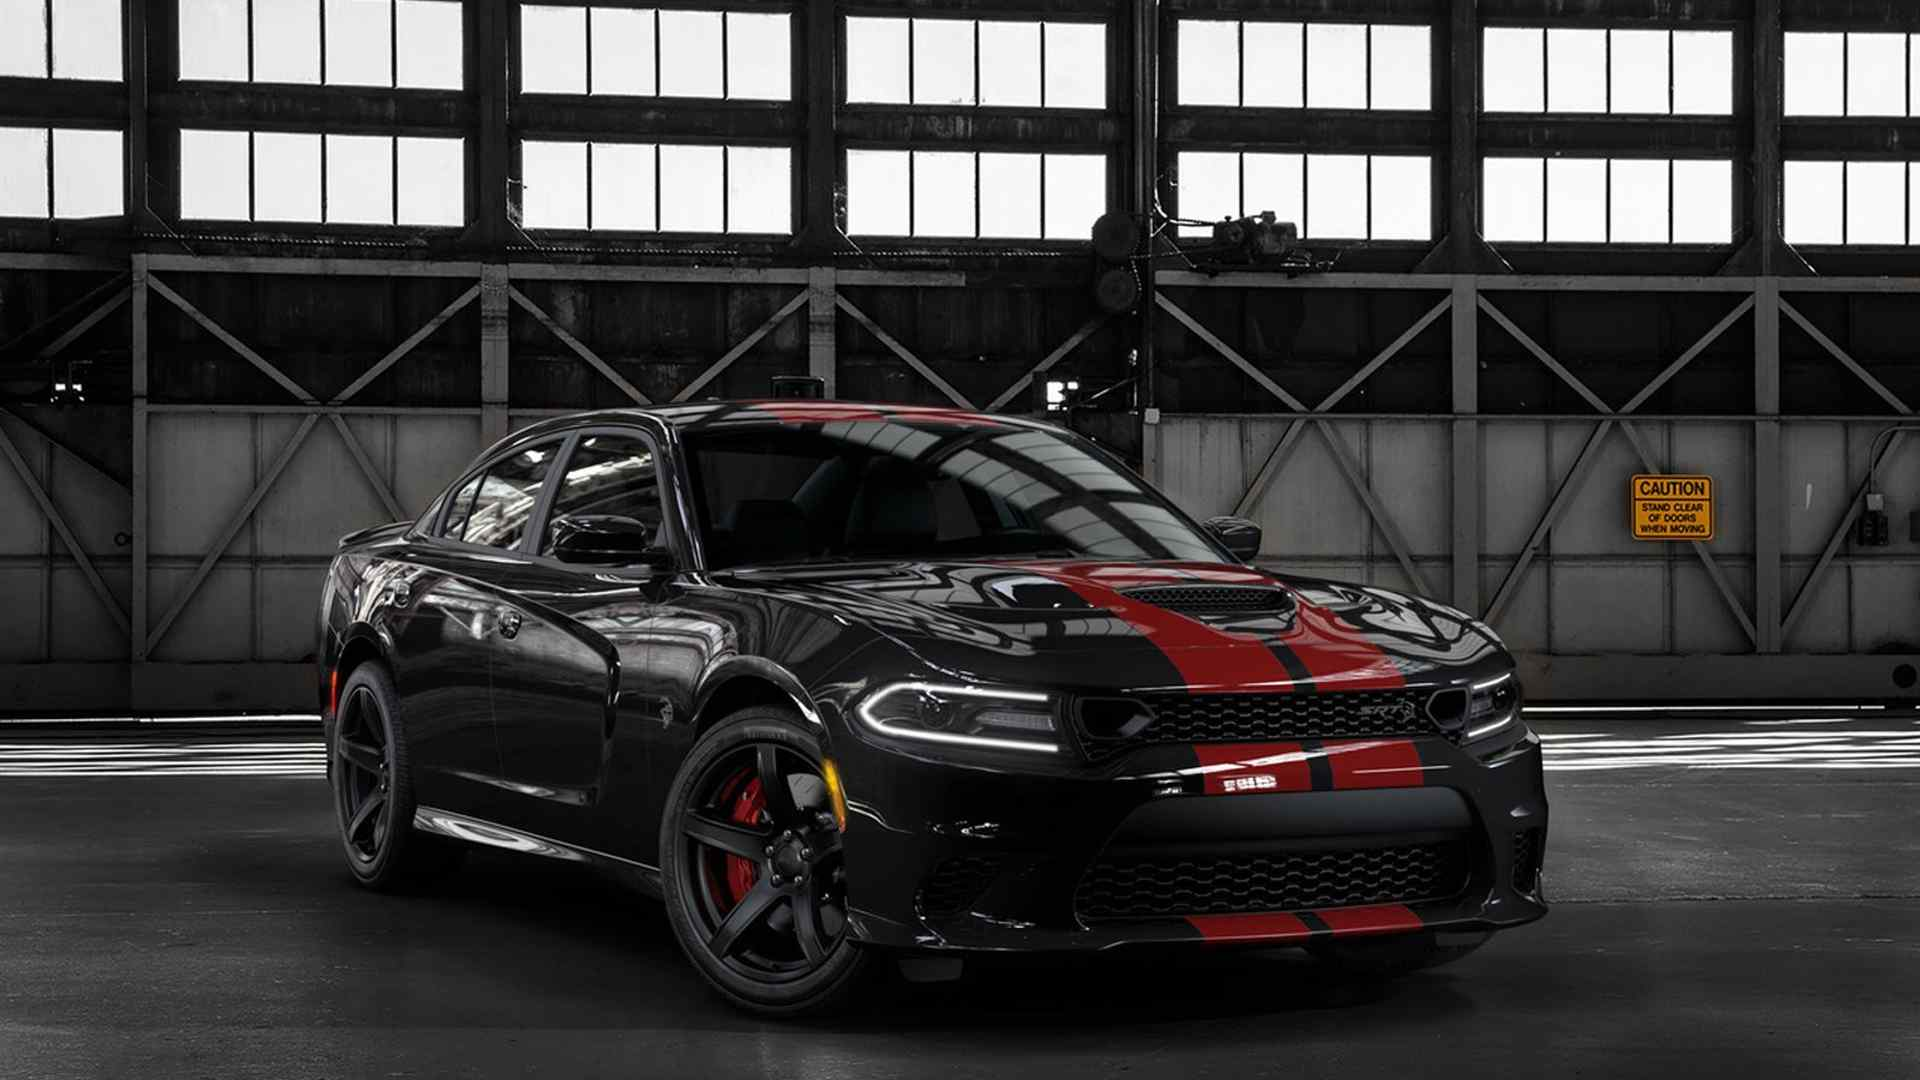 This 2019 Dodge Charger Srt Hellcat Looks Like A Shelby Mustang With